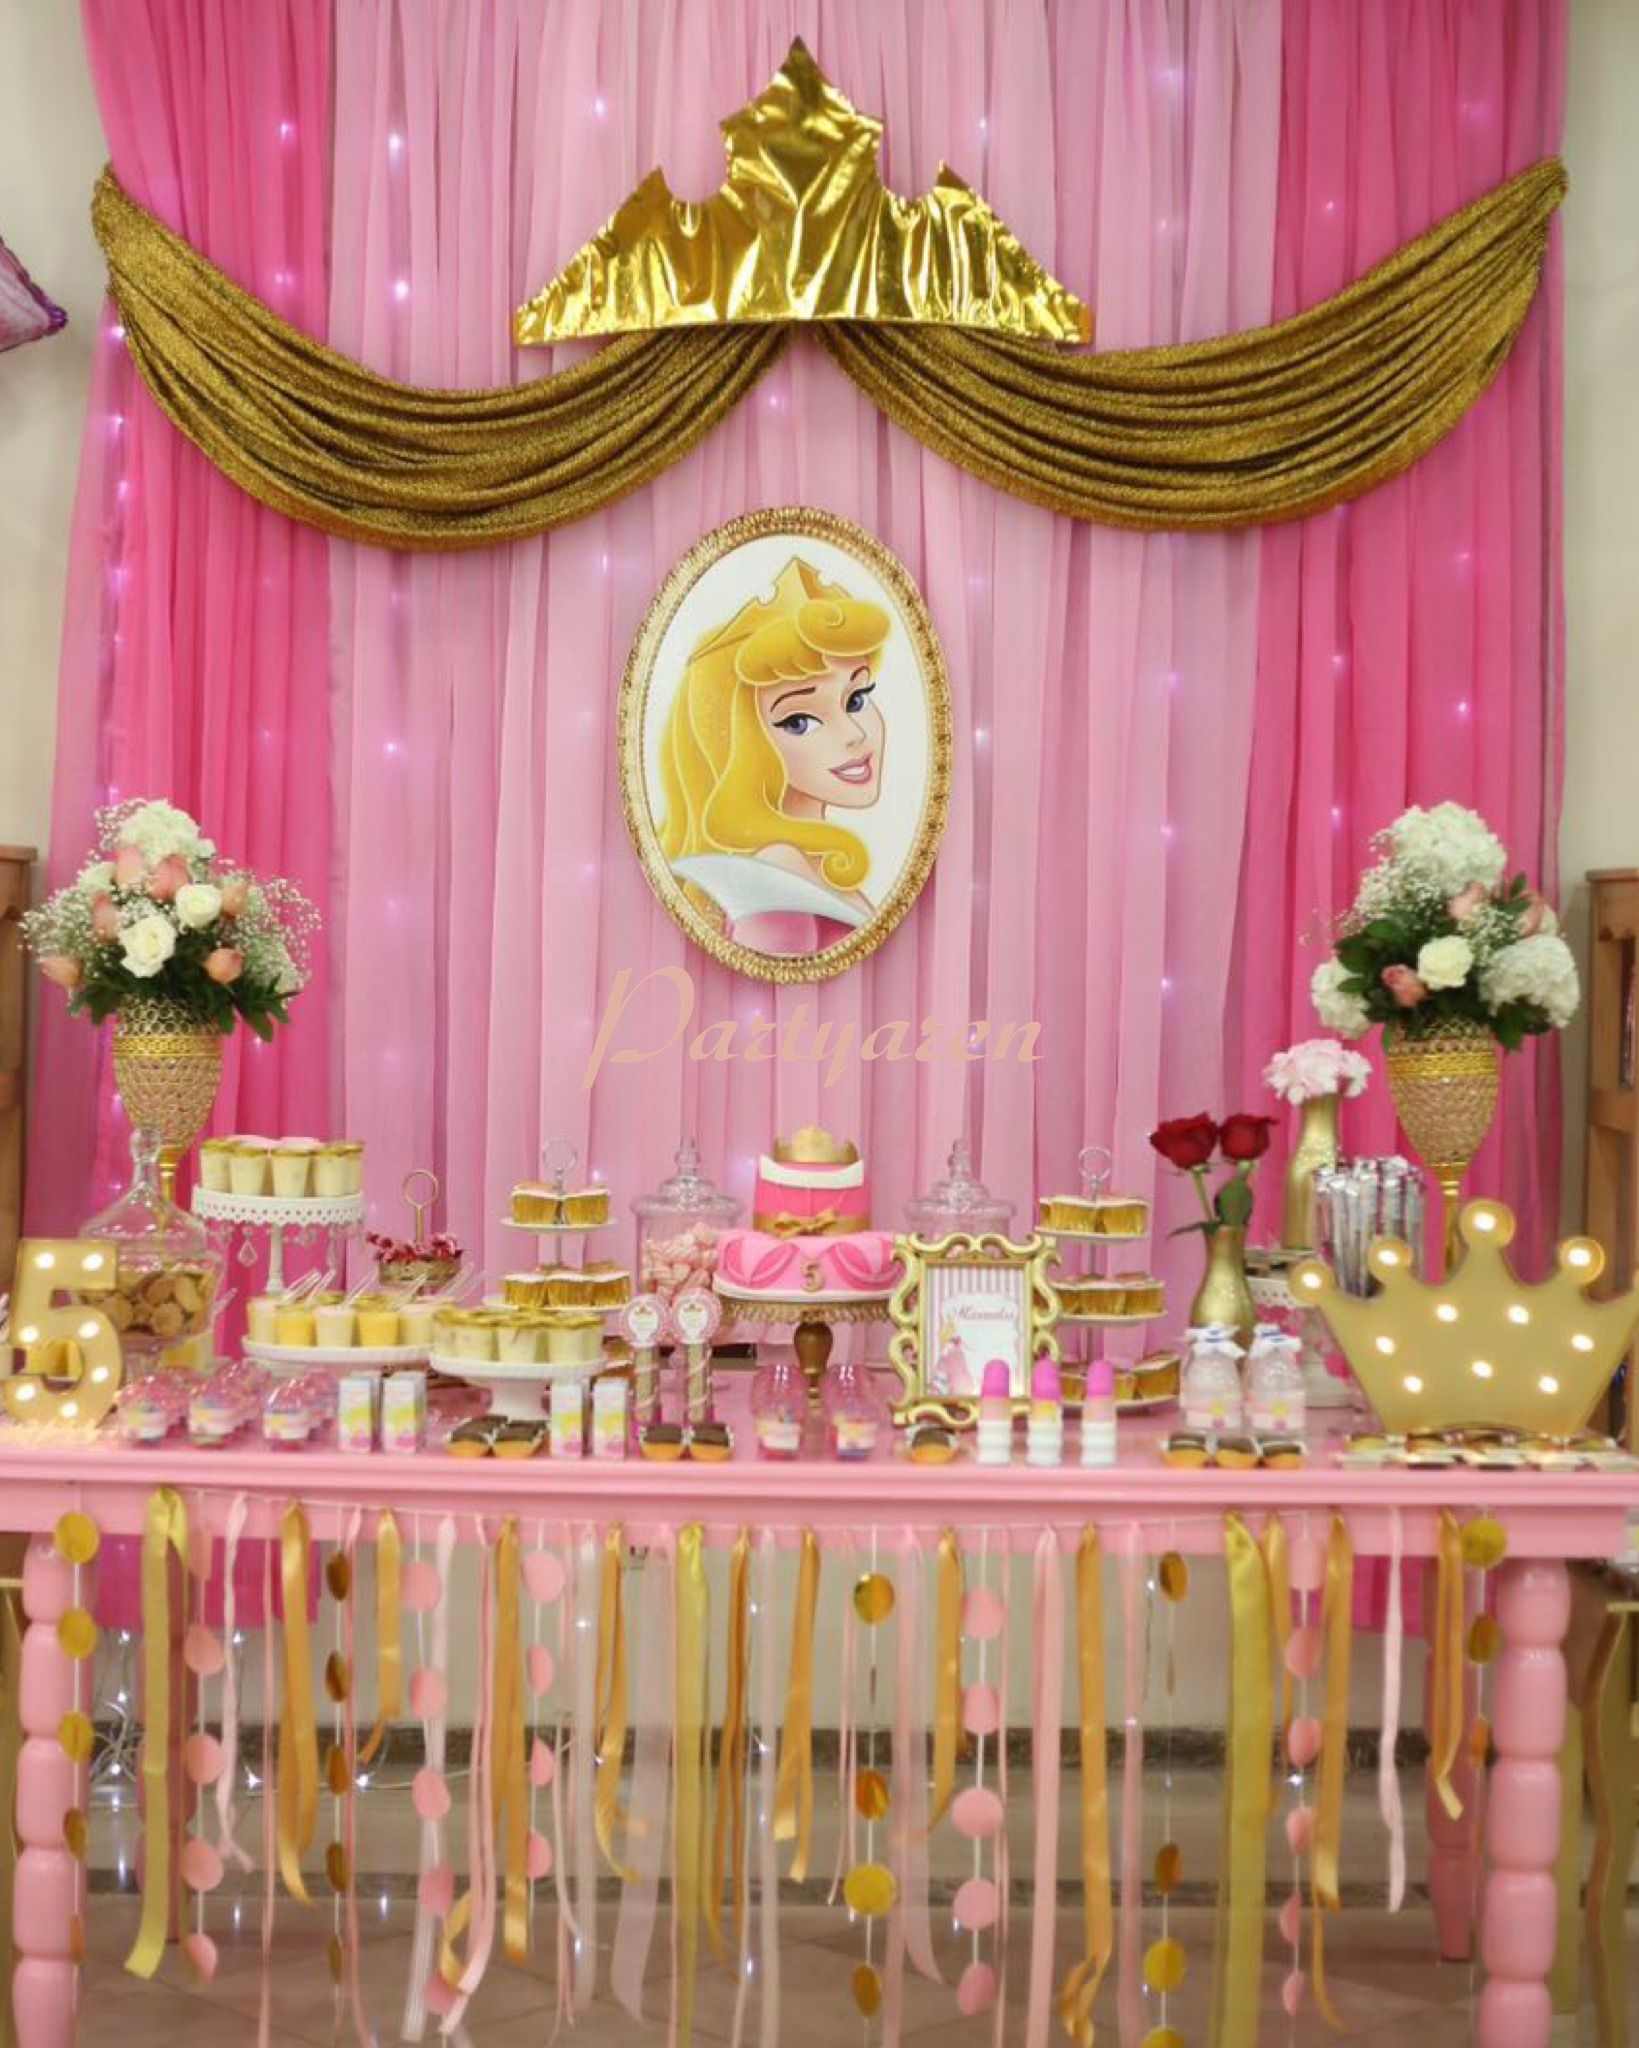 Princess Party Decoration Princess Party Fiesta Princesa Princesa Aurora Princess Aurora